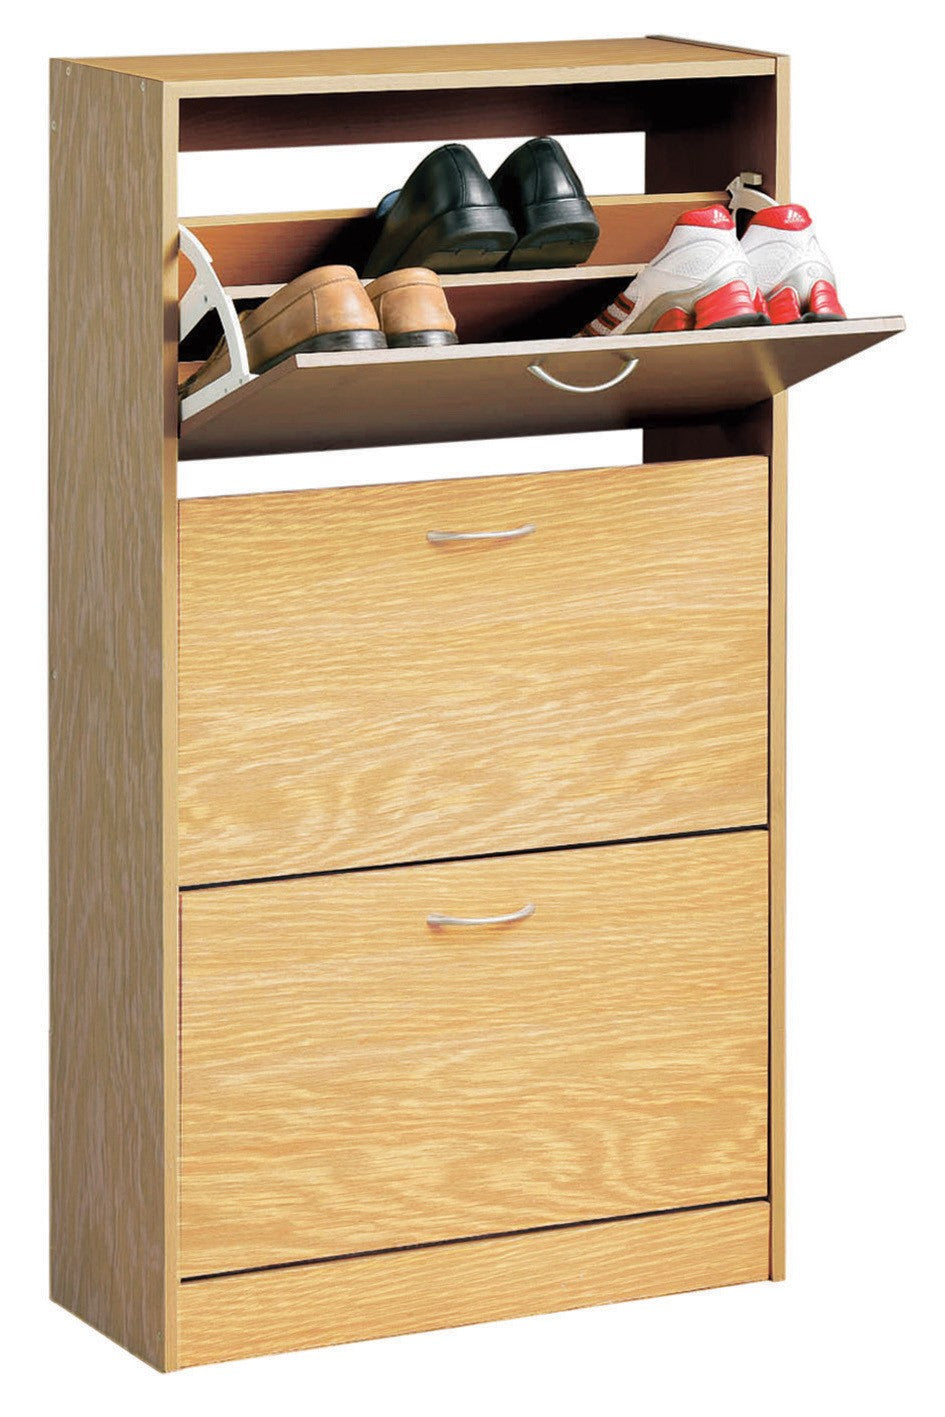 Norsk 3 Drawer Shoe Cupboard (Oak Colour) Open